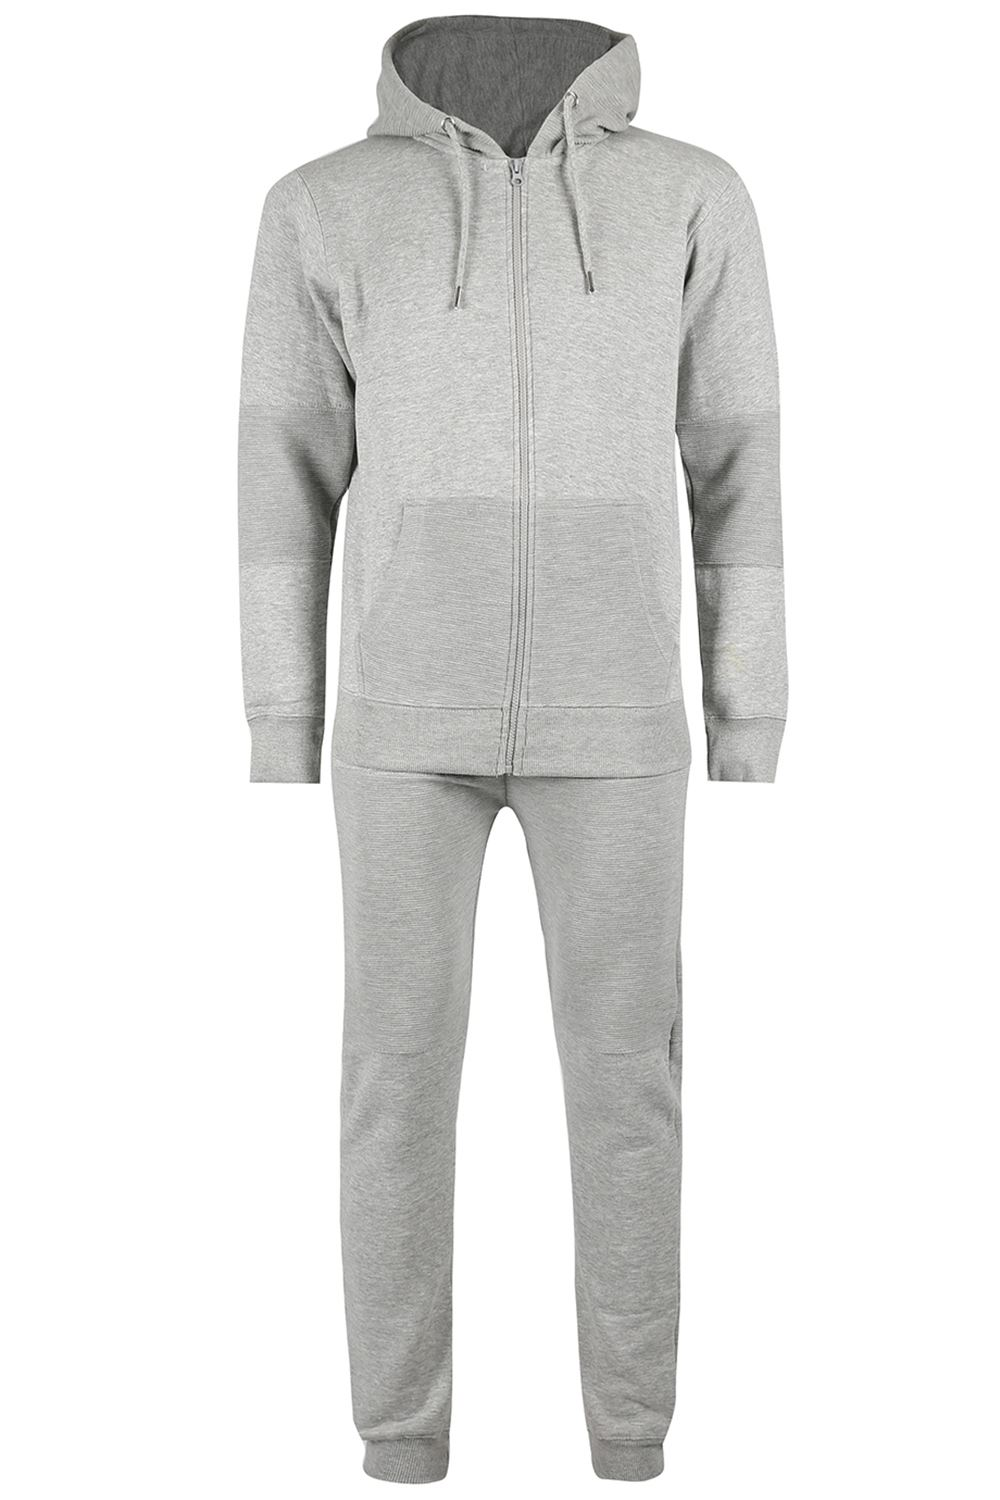 Mens-Pocket-Fleece-Knit-Hooded-Long-Sleeve-Overhead-Top-Zip-Up-Trouser-Tracksuit